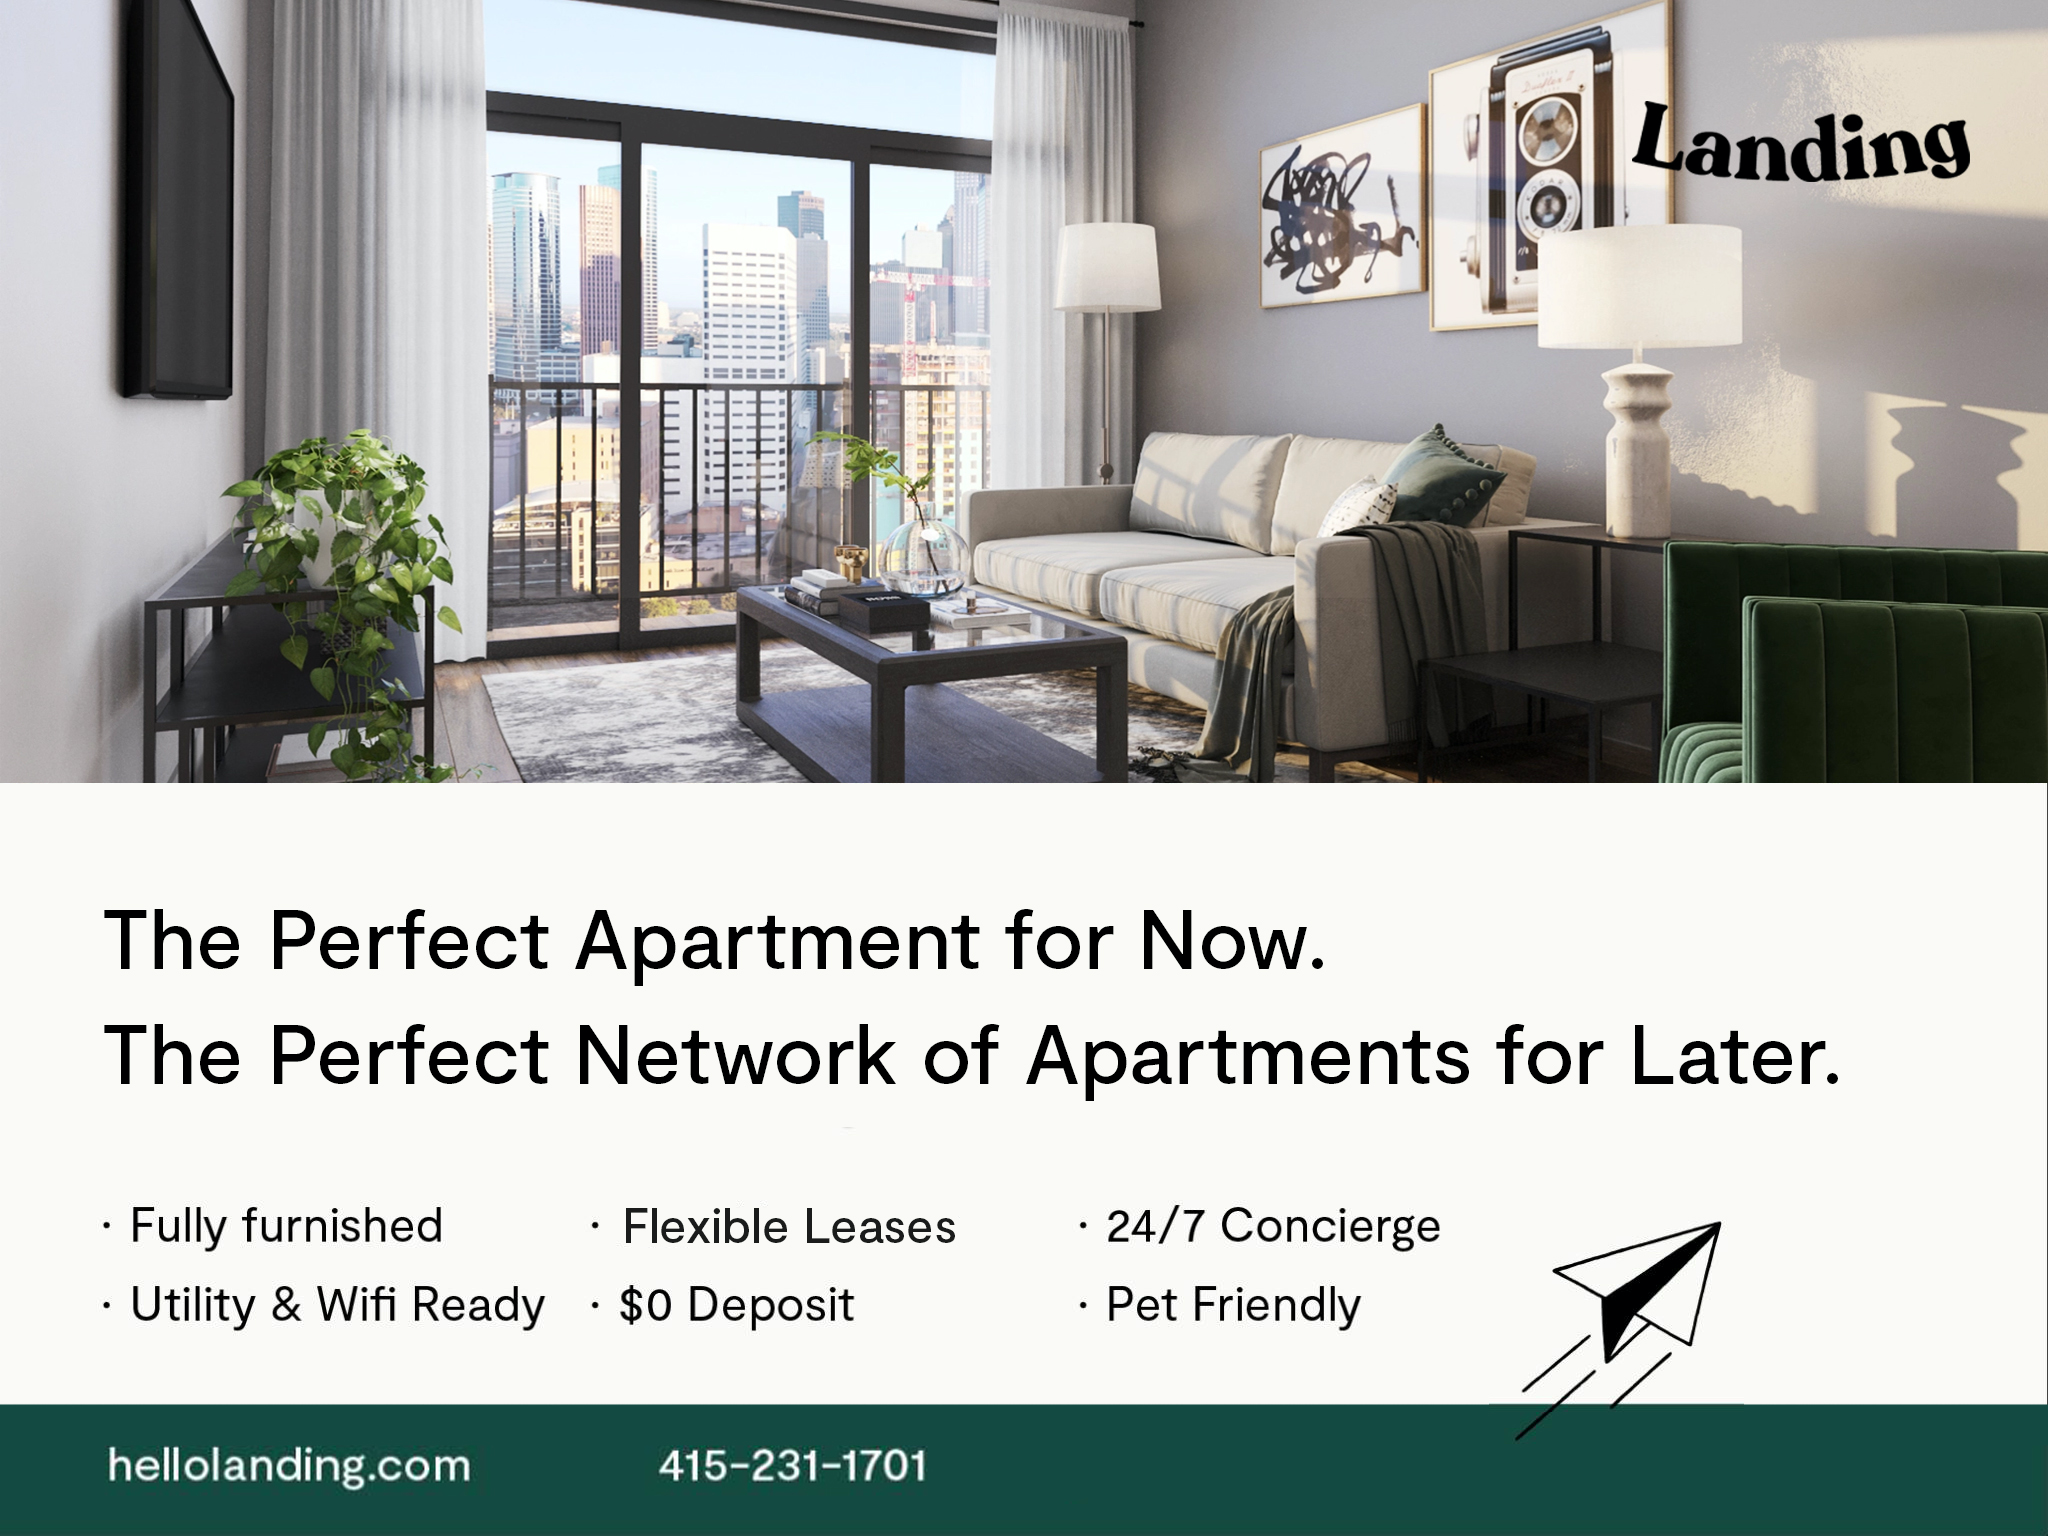 Landing - The Katy rental